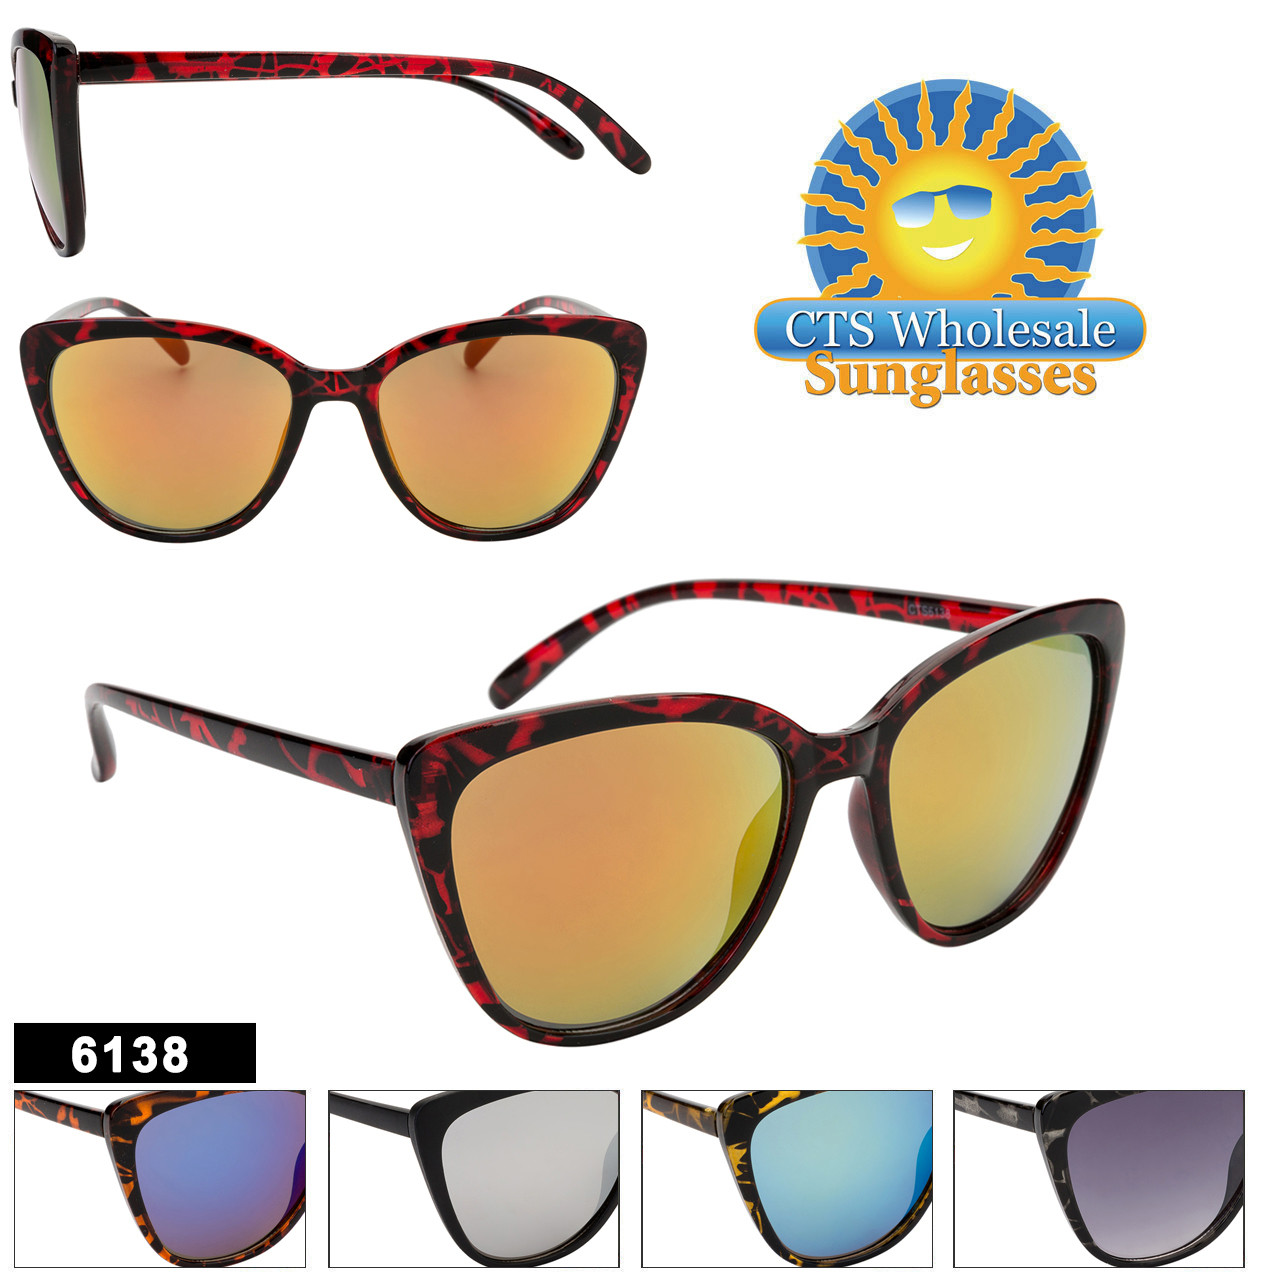 Fashion Sunglasses Wholesale - Style #6138